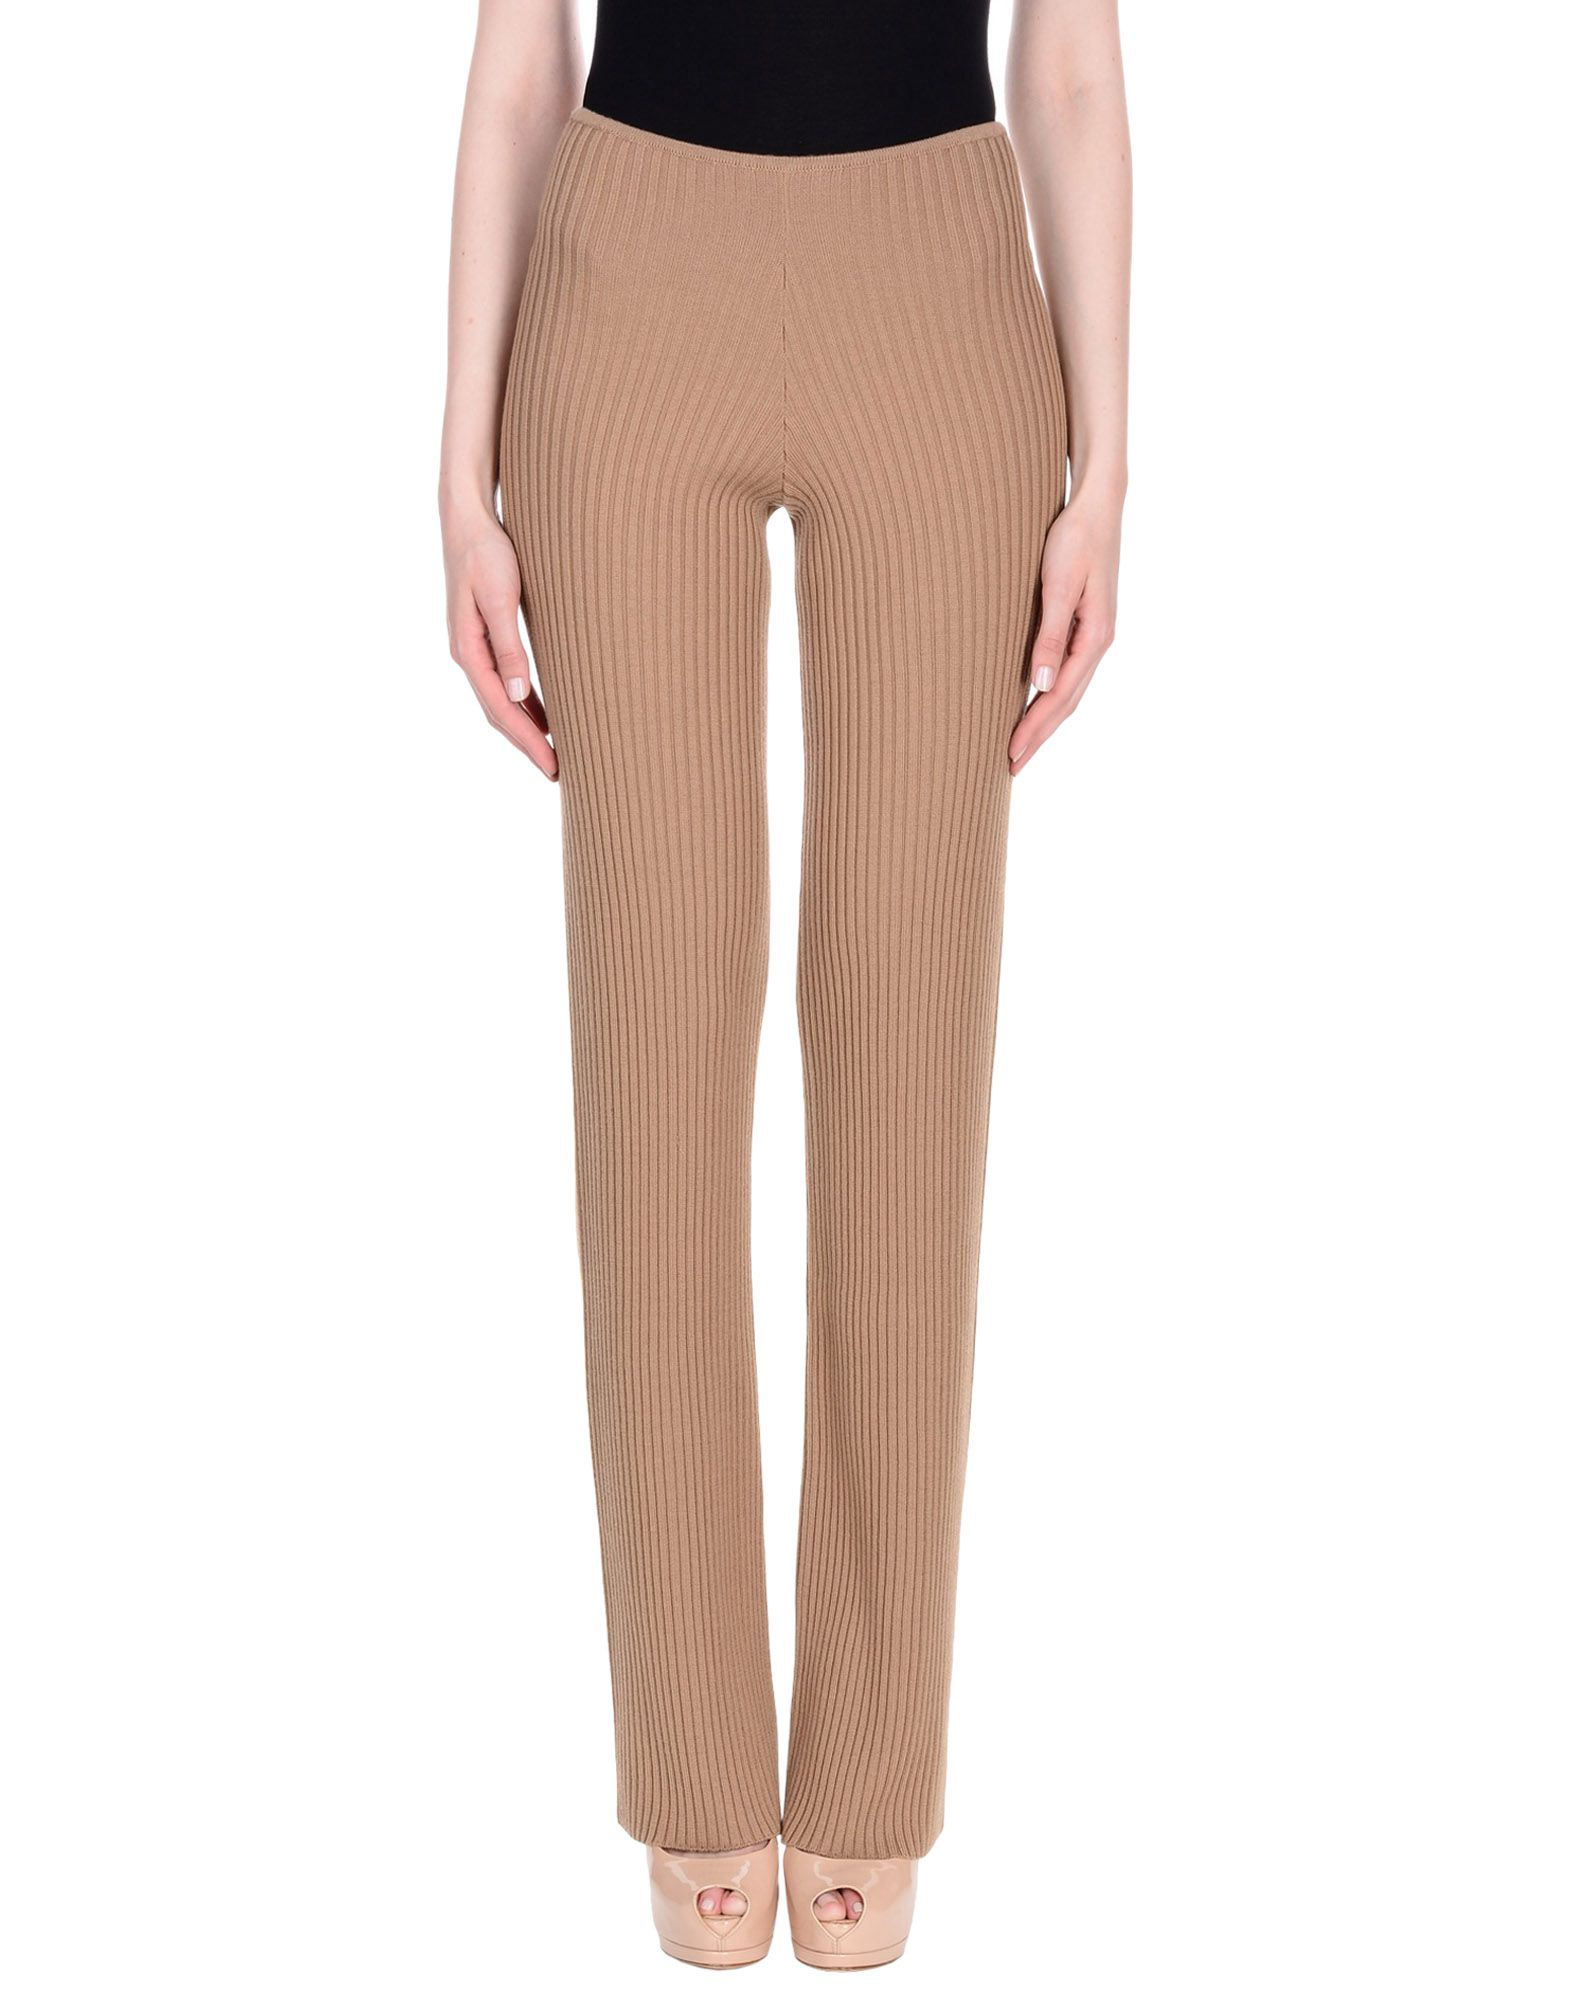 NERVURE Casual Pants in Camel